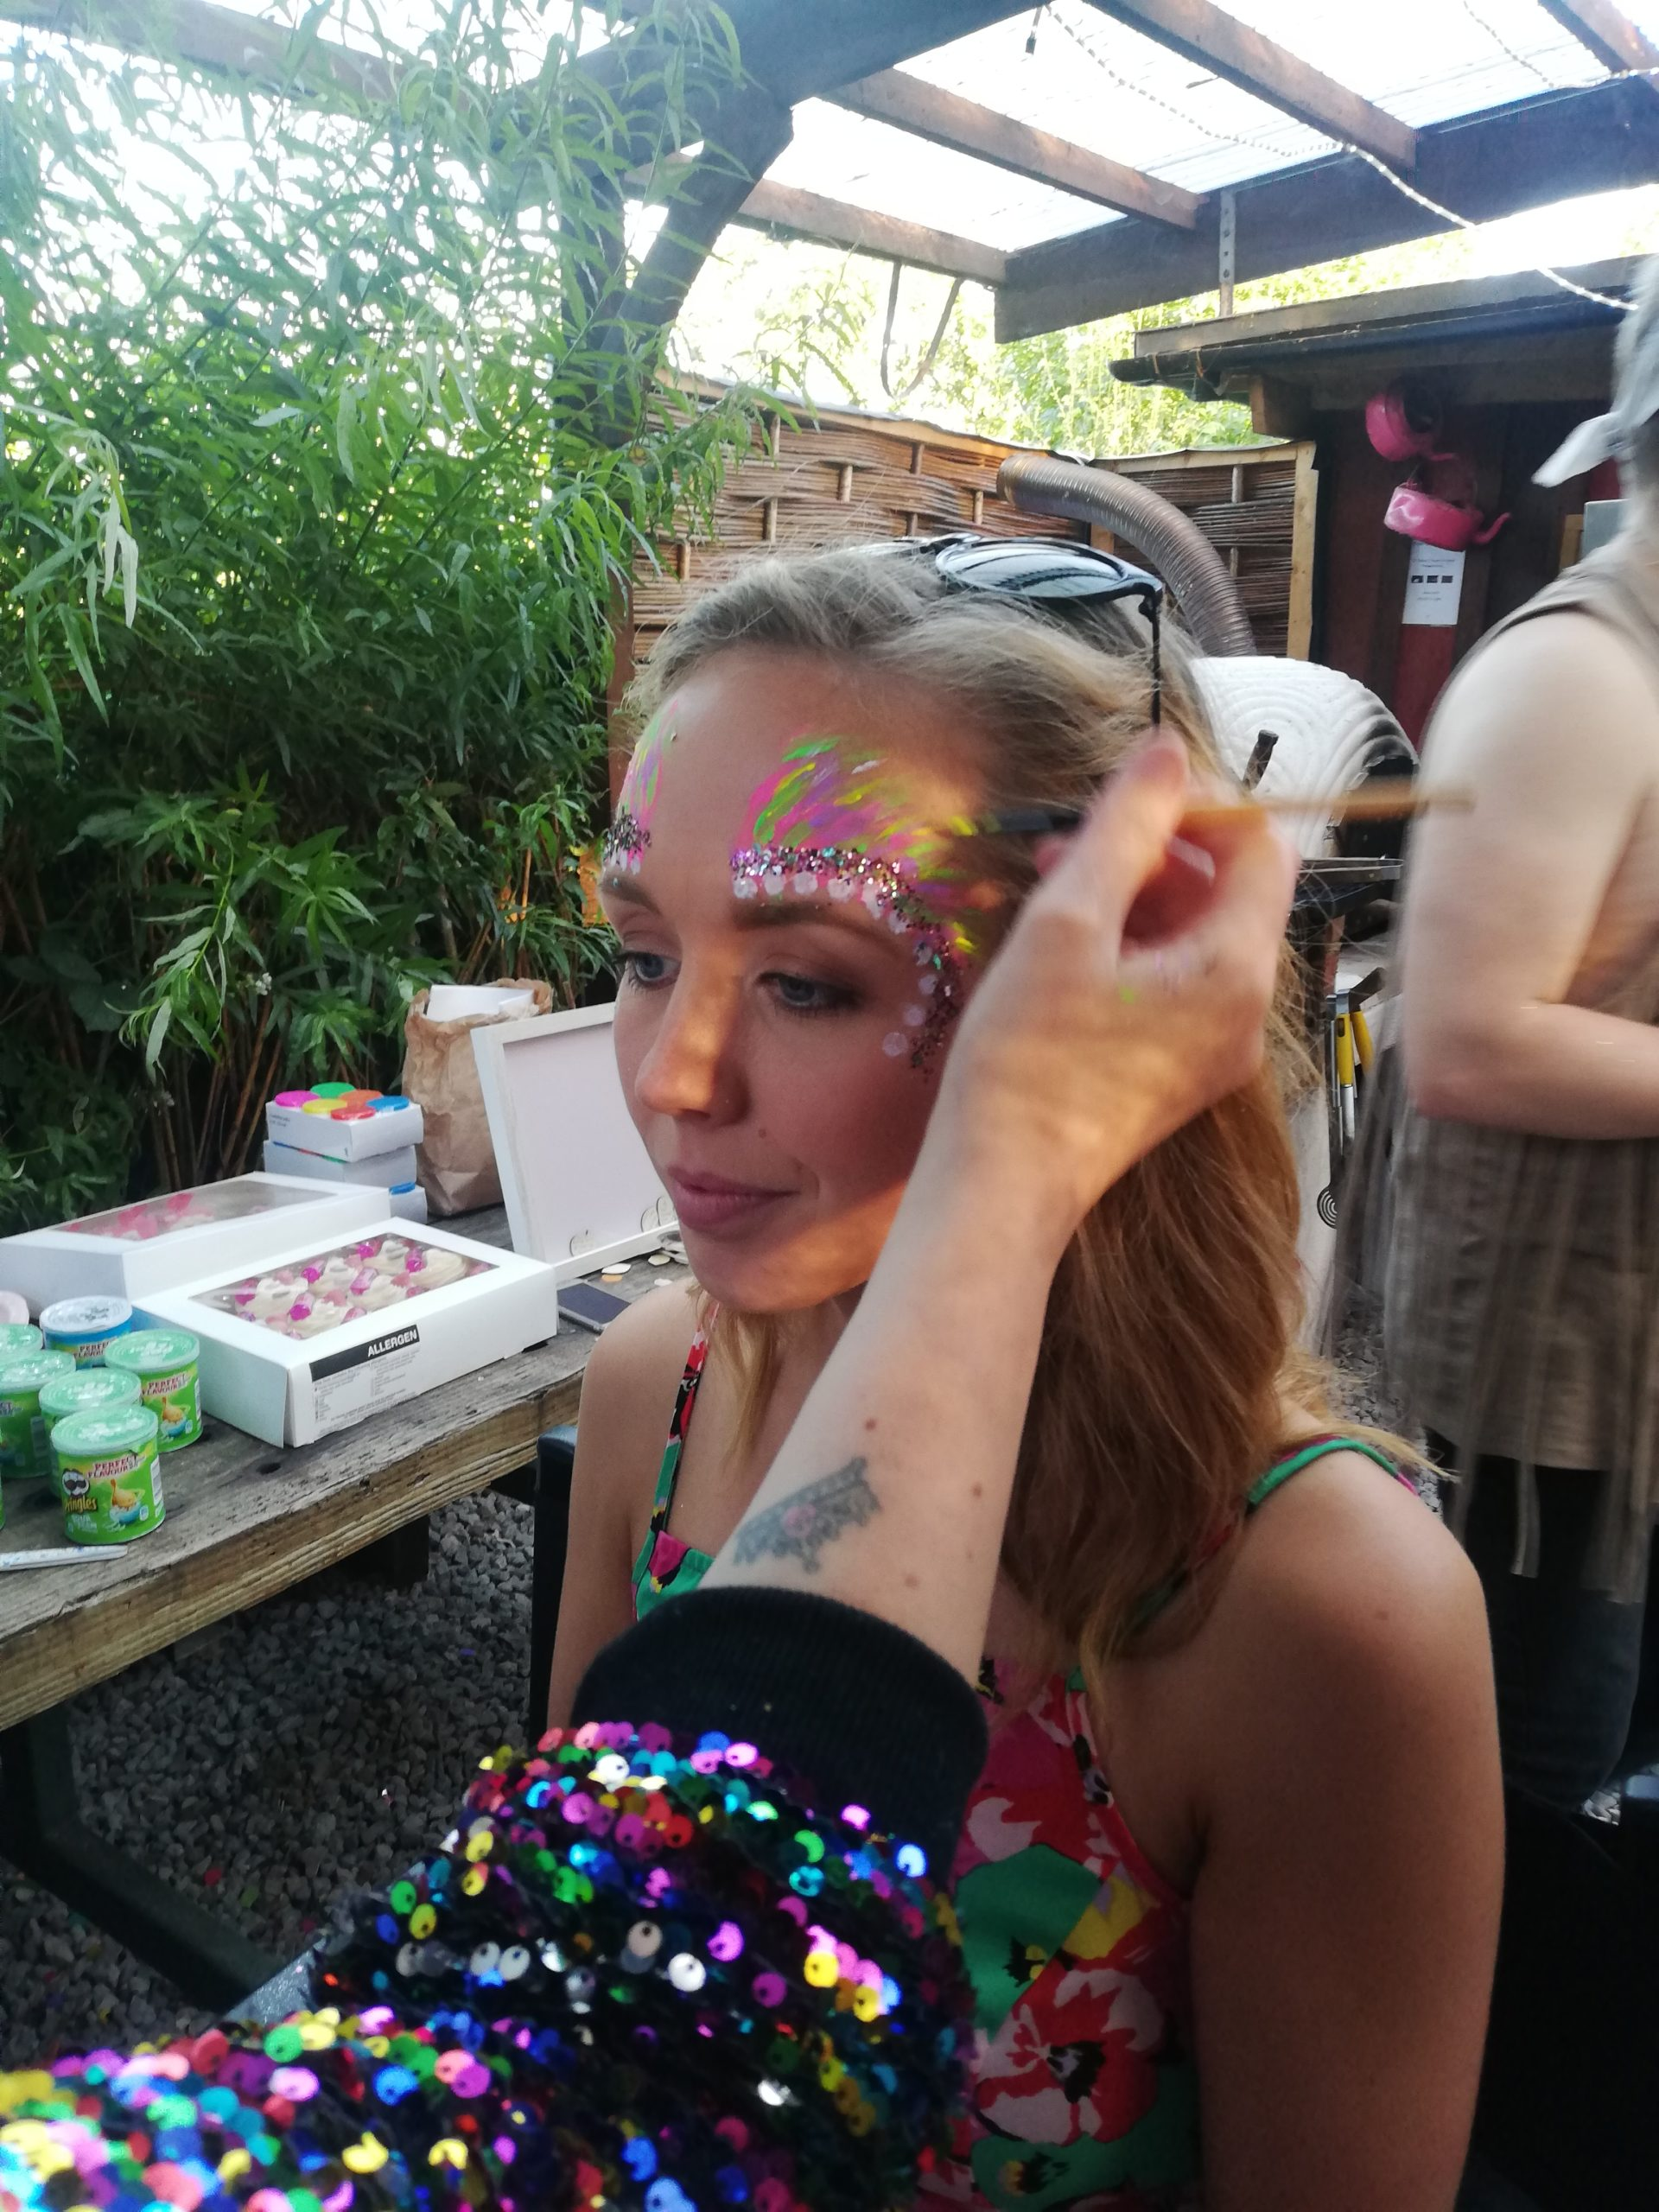 Sick of the same type of garden party on repeat while you wait for pubs to reopen? Why not add a bit of glitter to your next Garden Party this summer! It doesn't just have to be a BBQ